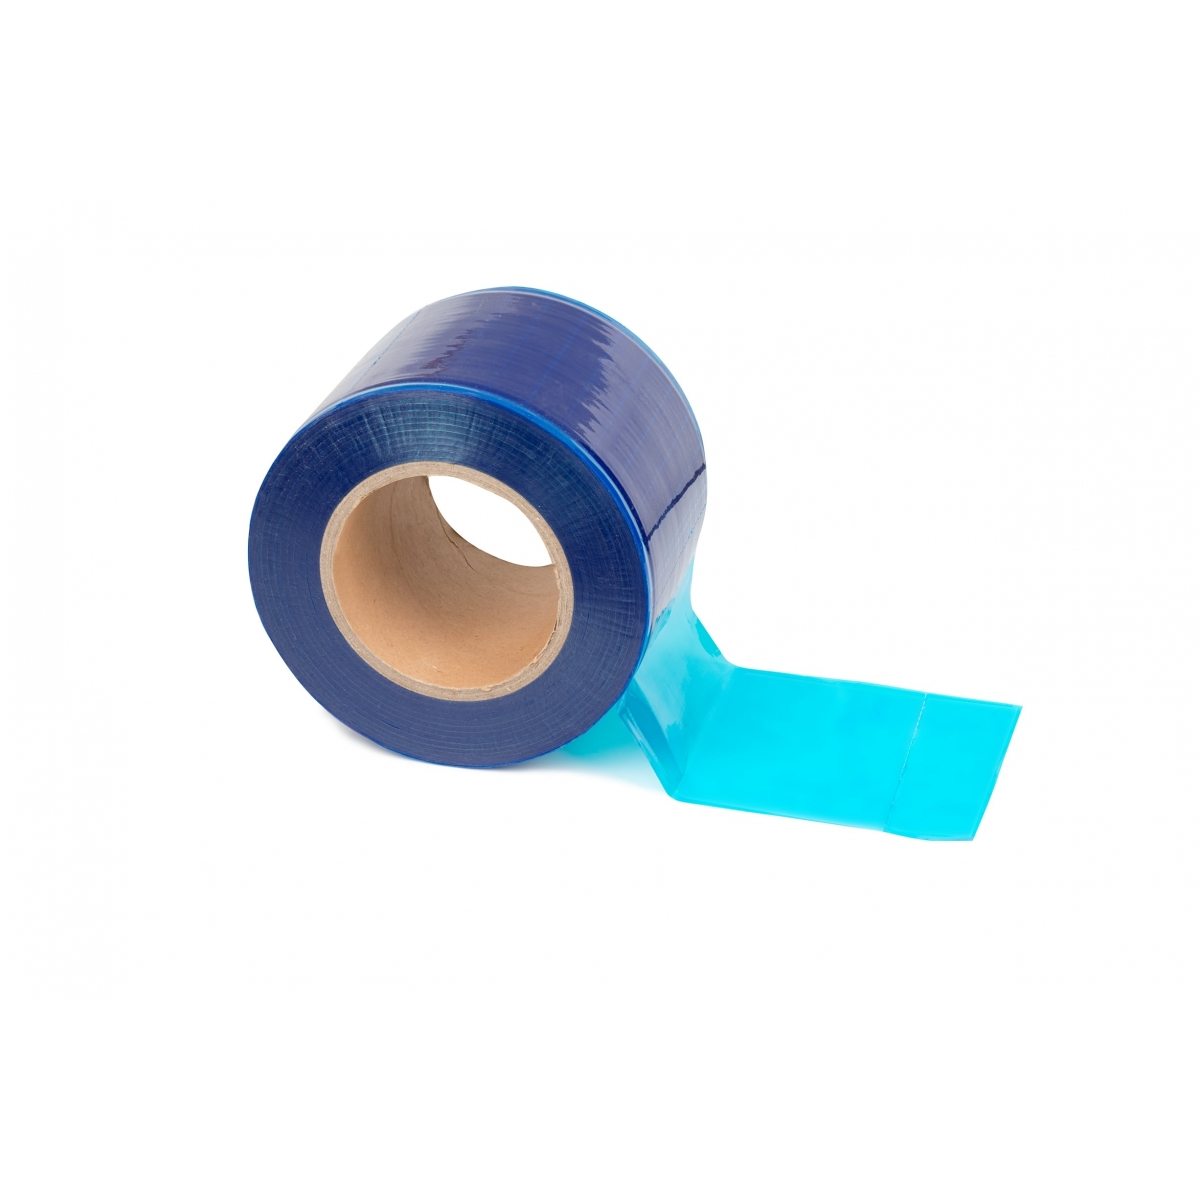 PROTECTIONS - PROTECTION ADHESIVE BLEUE DERMOGRAPHE DEFEND (x1200)